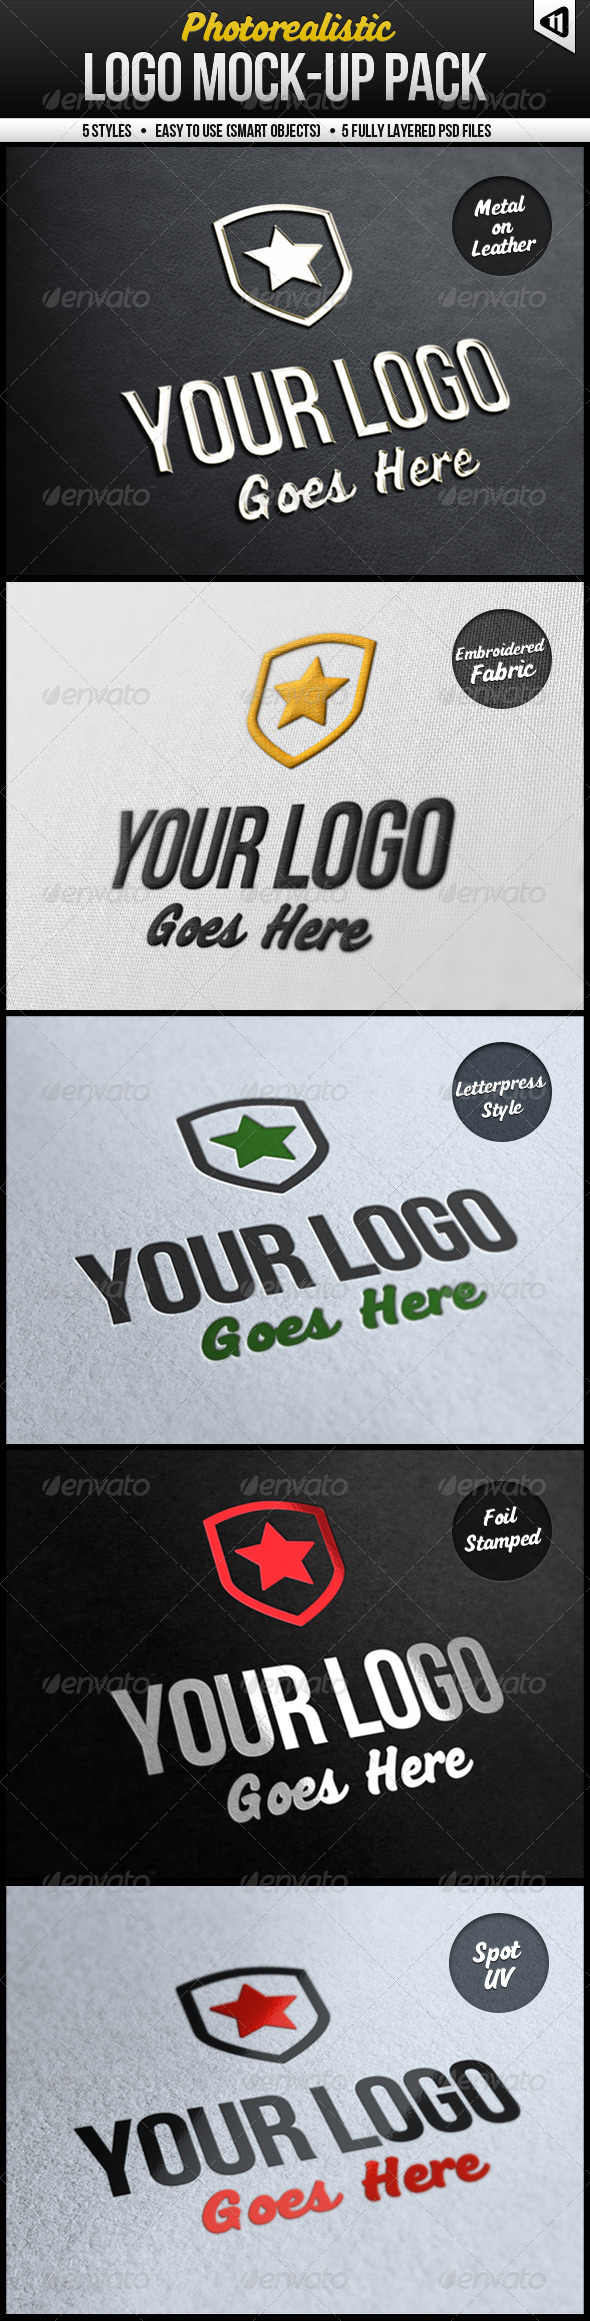 Photorealistic Logo Mock-Up Pack